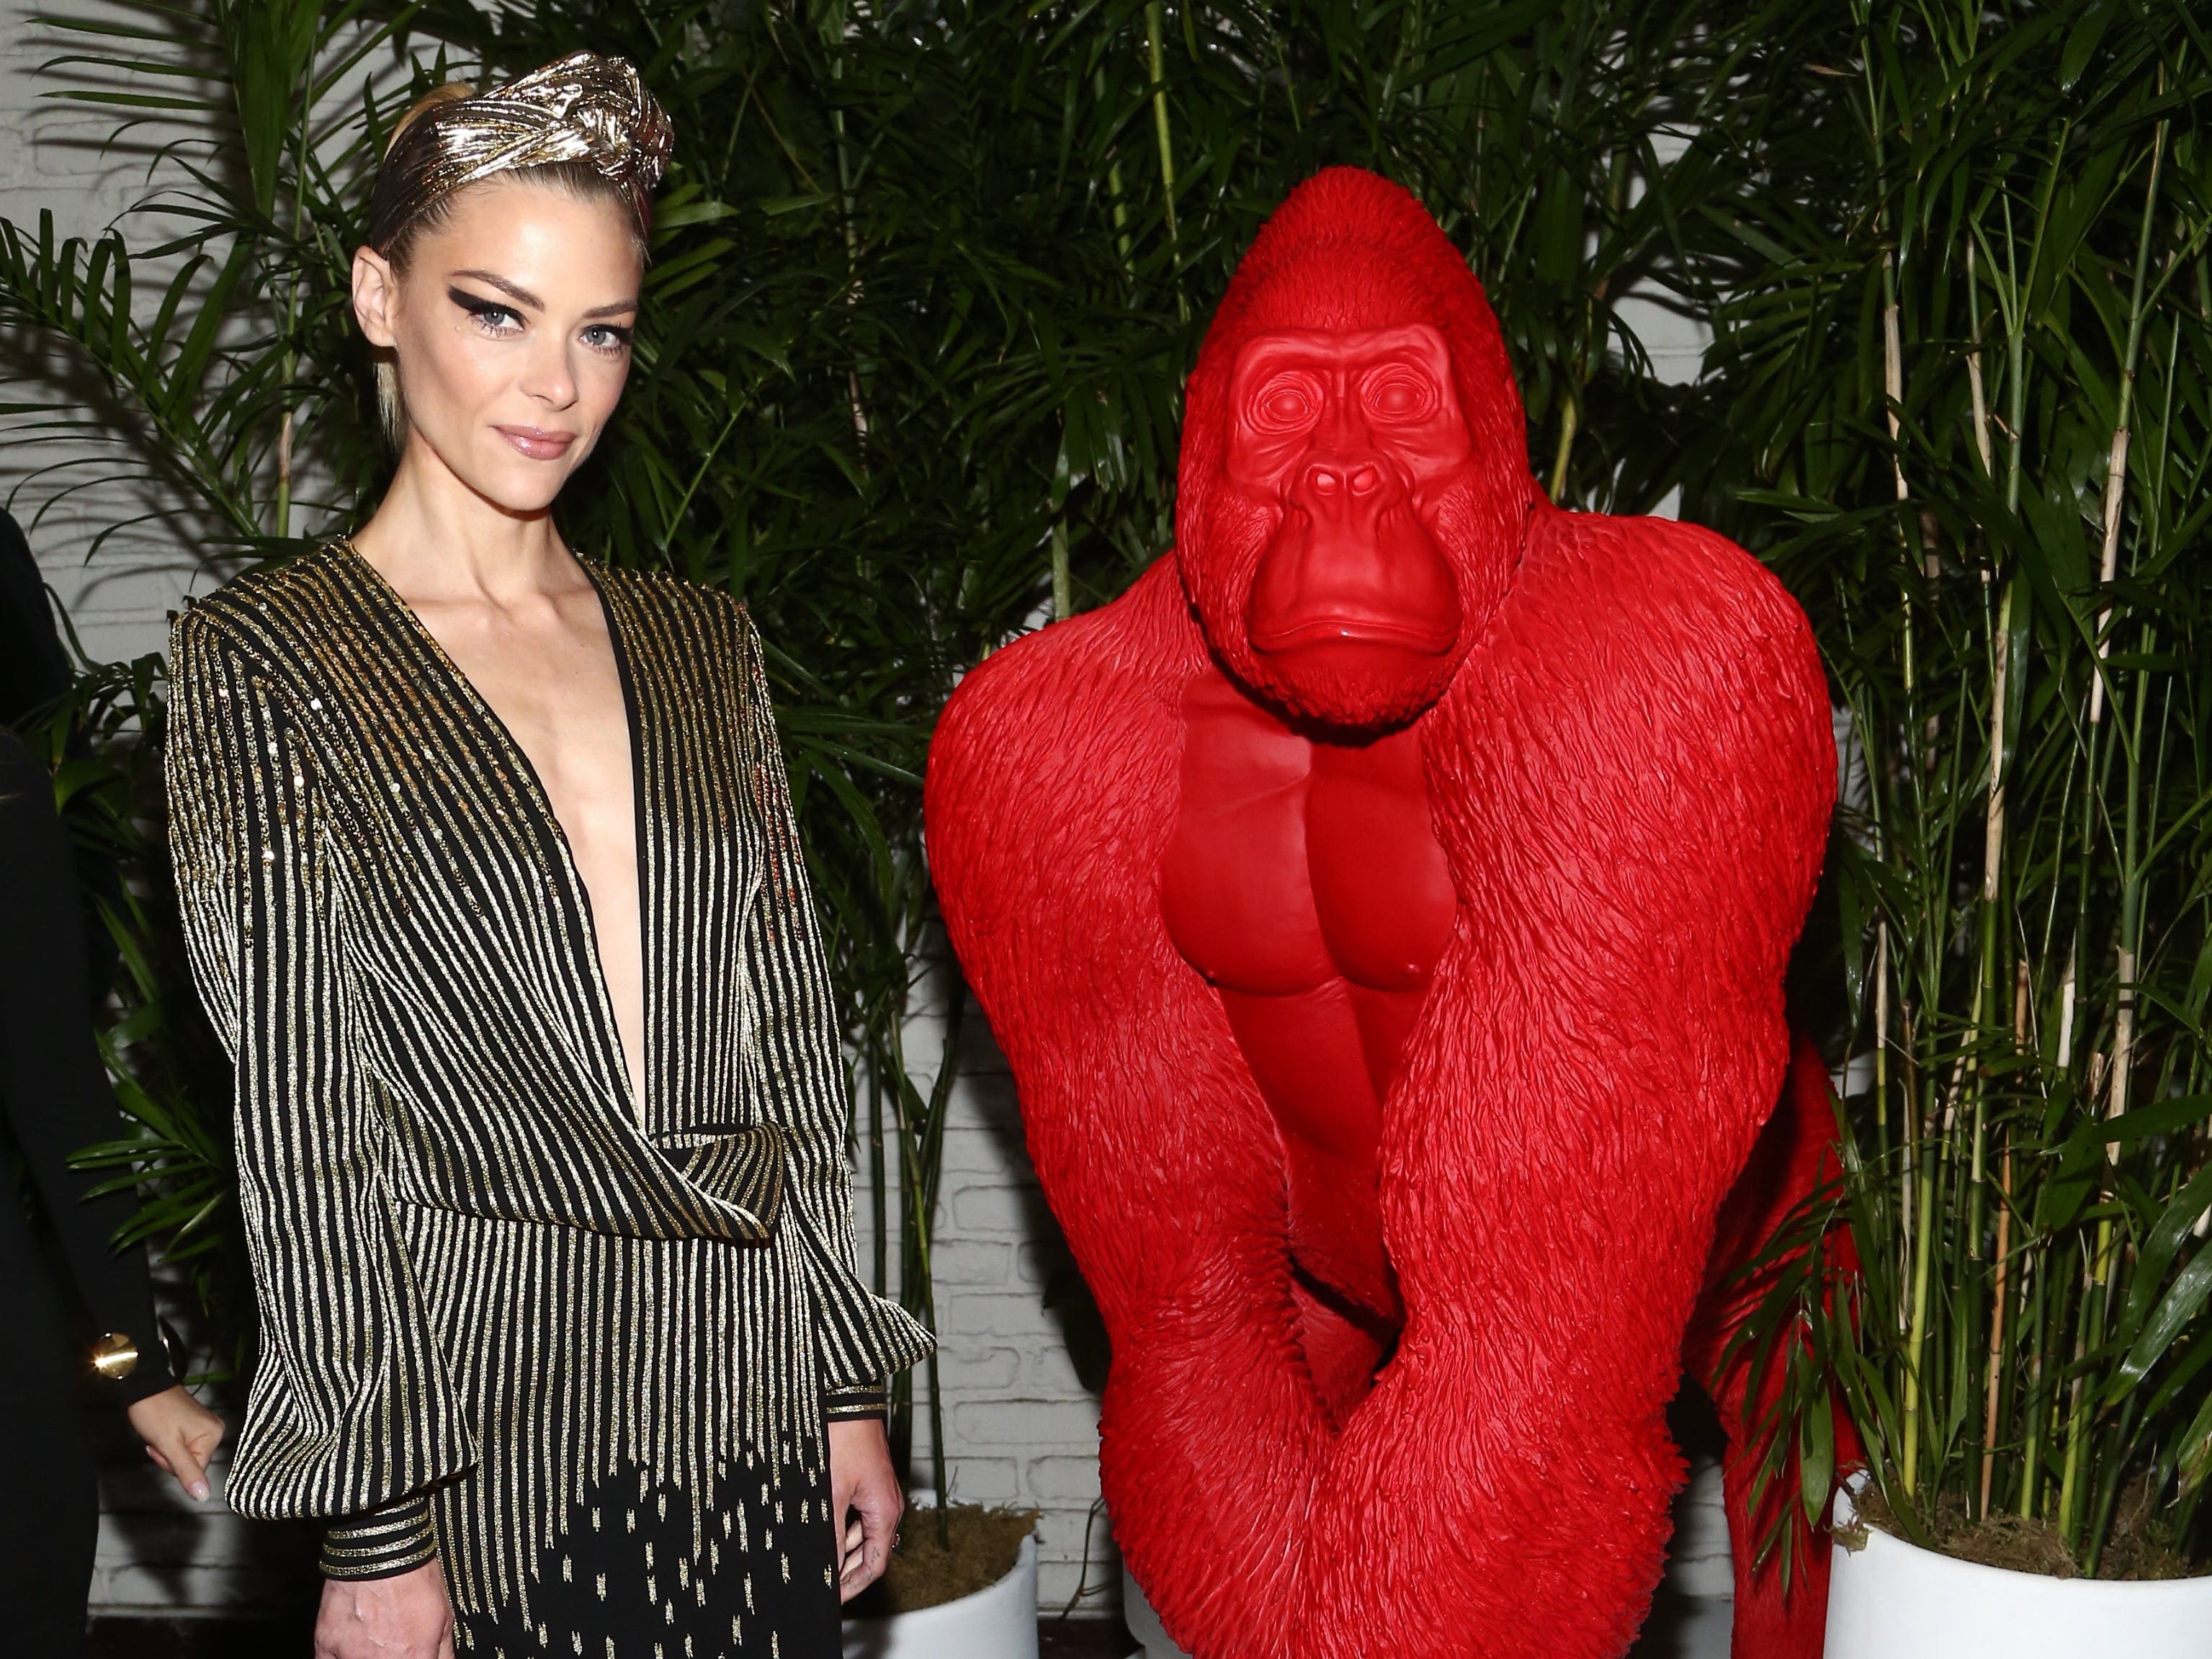 LOS ANGELES, CALIFORNIA - JANUARY 04: Jaime king attends the Giorgio Armani Beauty at Best Performances held at Chateau Marmont on January 04, 2019 in Los Angeles, California. (Photo by Tommaso Boddi/Getty Images for Giorgio Armani) ORG XMIT: 775276855 ORIG FILE ID: 1090008510